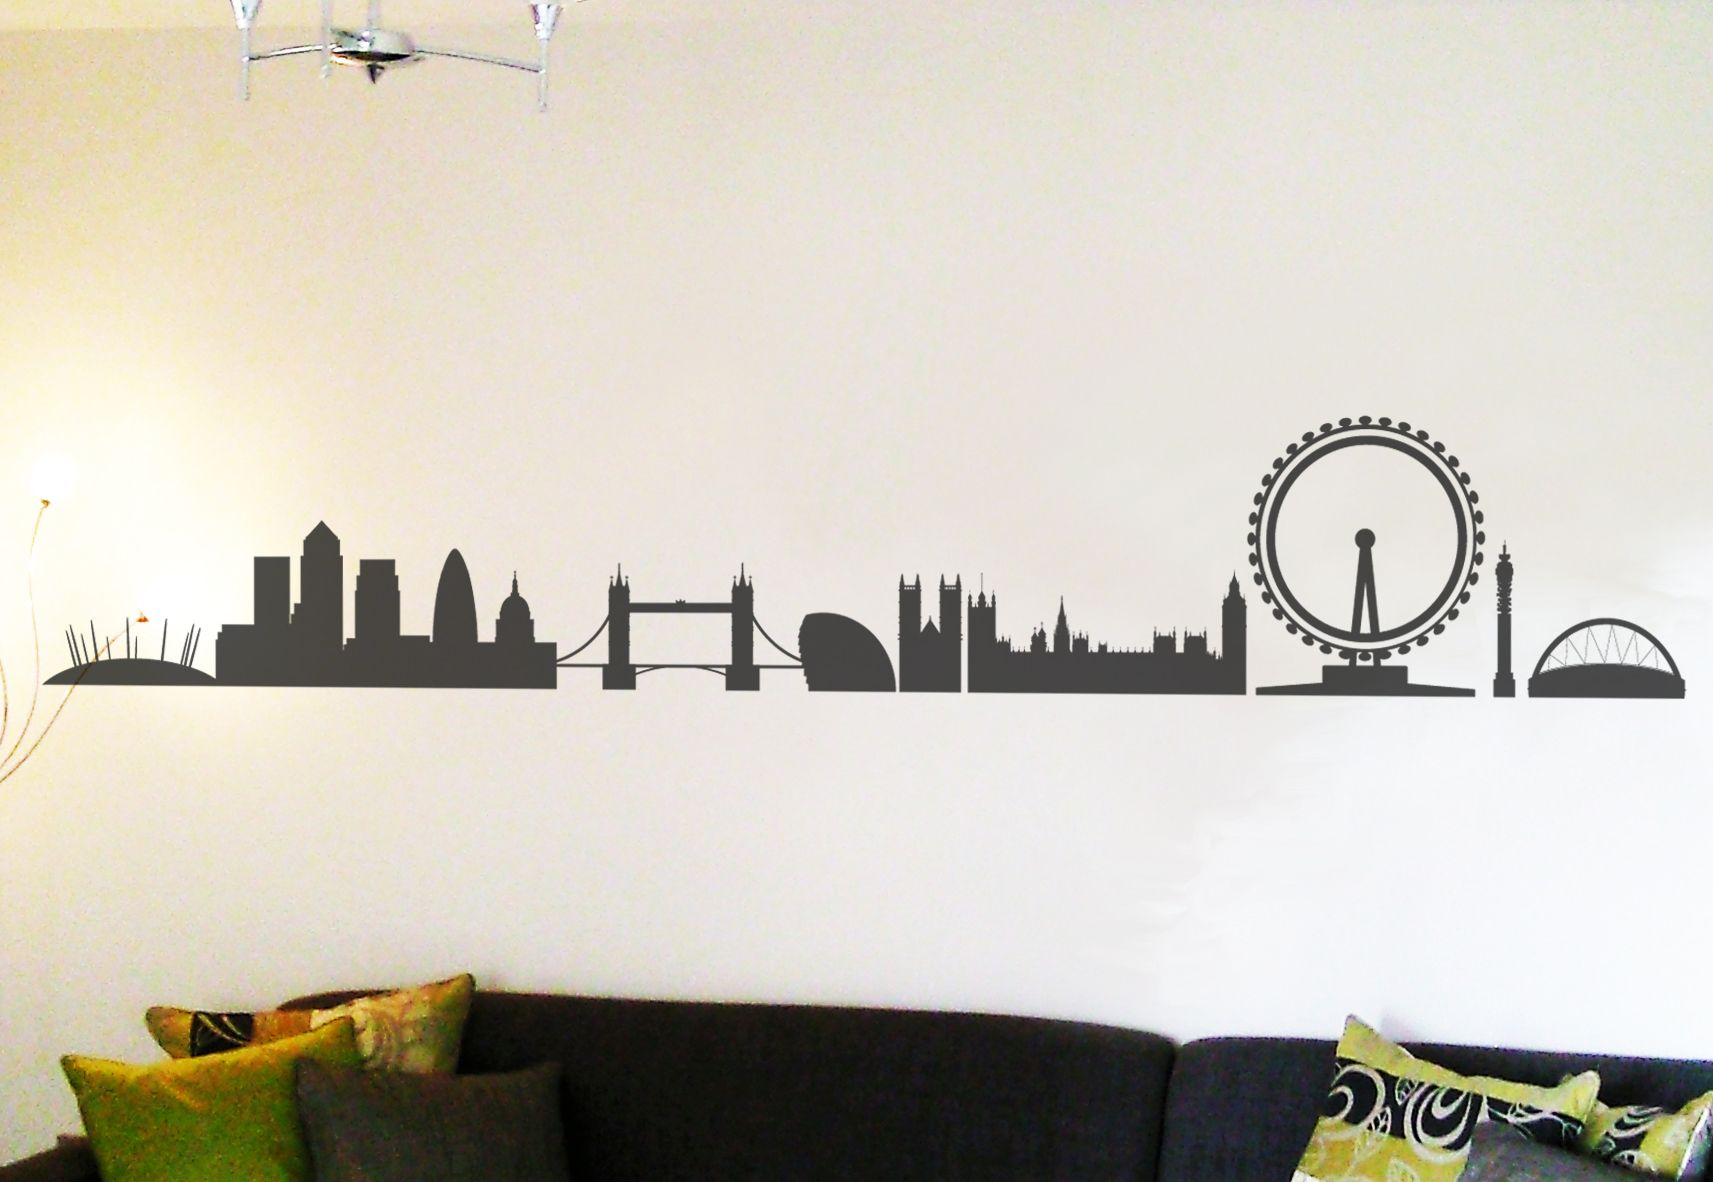 London Skyline Wall Sticker By Nutmeg Wall Art Stickers Made By Nutmeg. At  BOUF